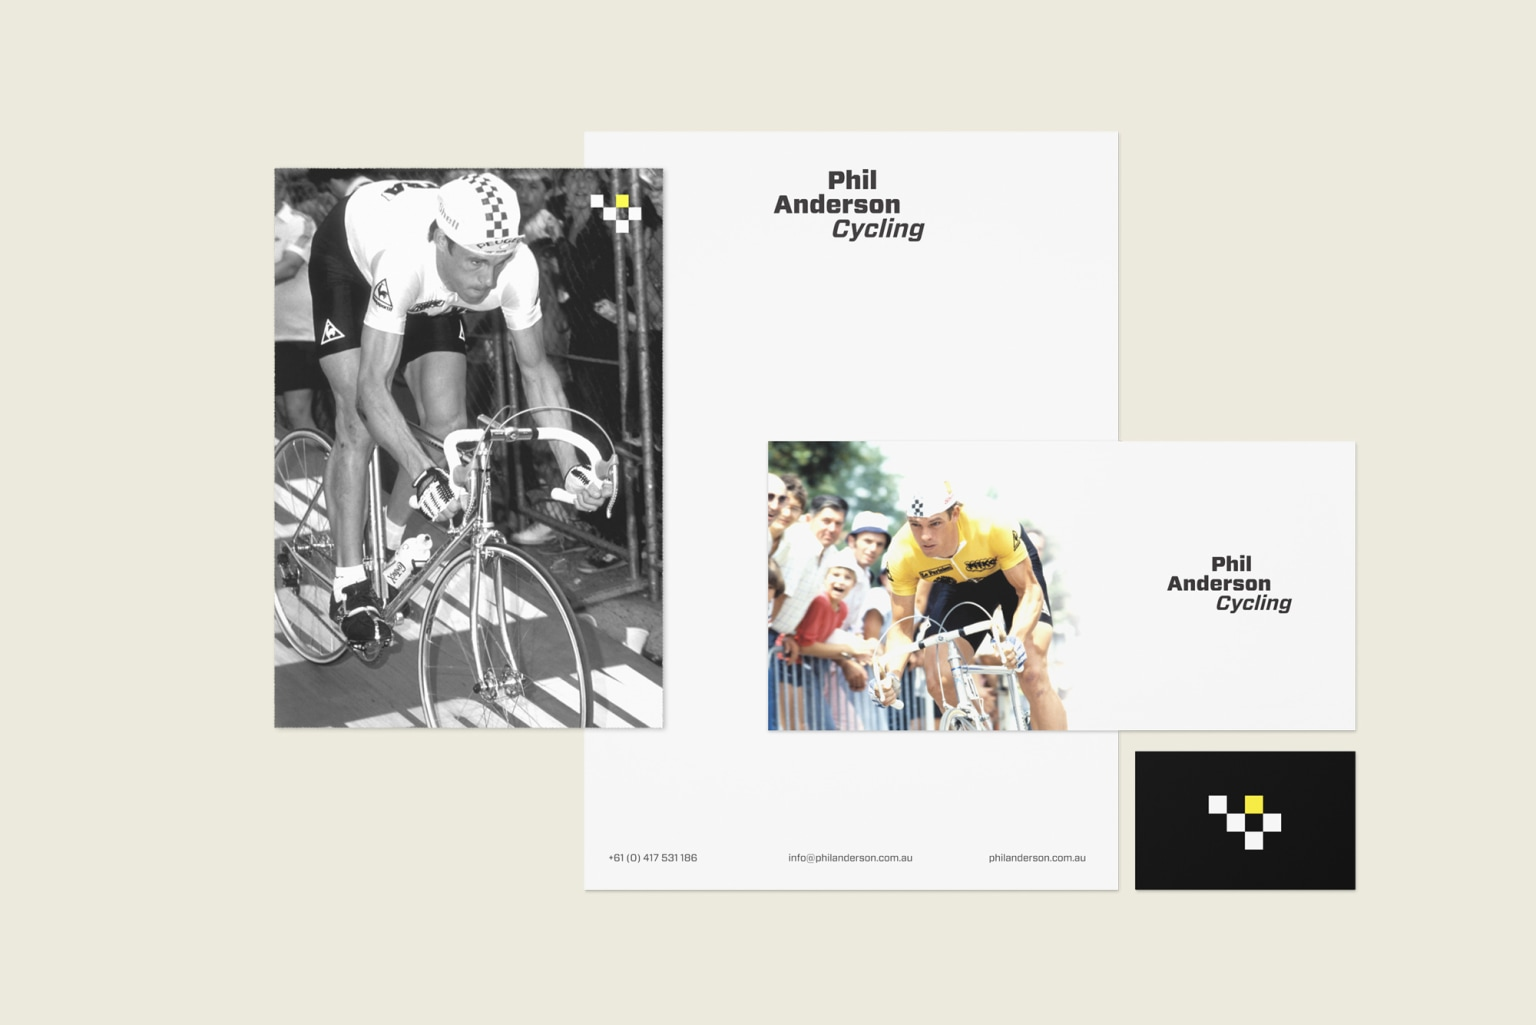 Phil Anderson Cycling